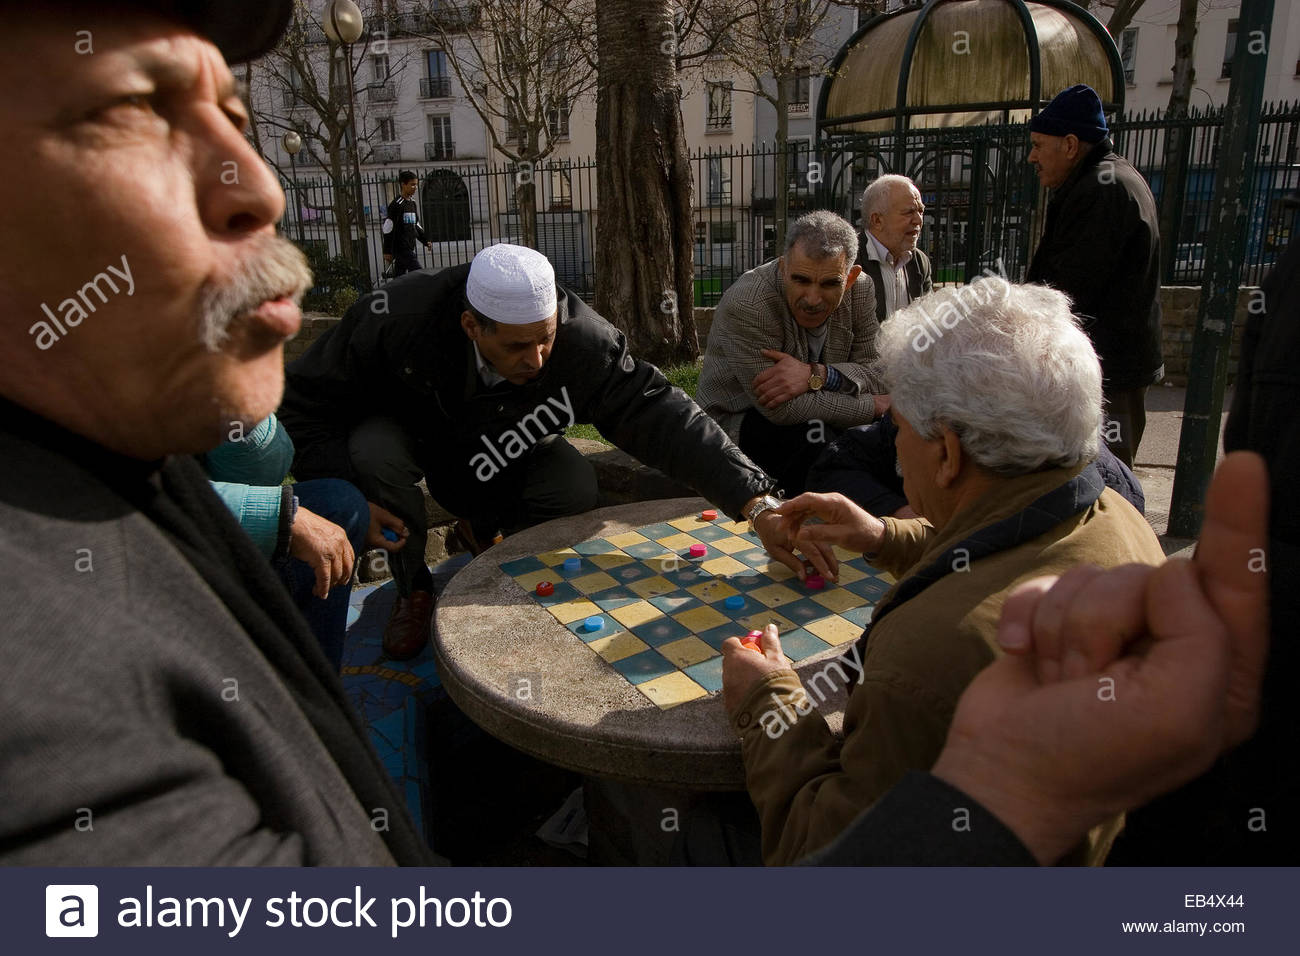 A group of men meet every afternoon to play checkers in the Square Leon Serpollet. - Stock Image